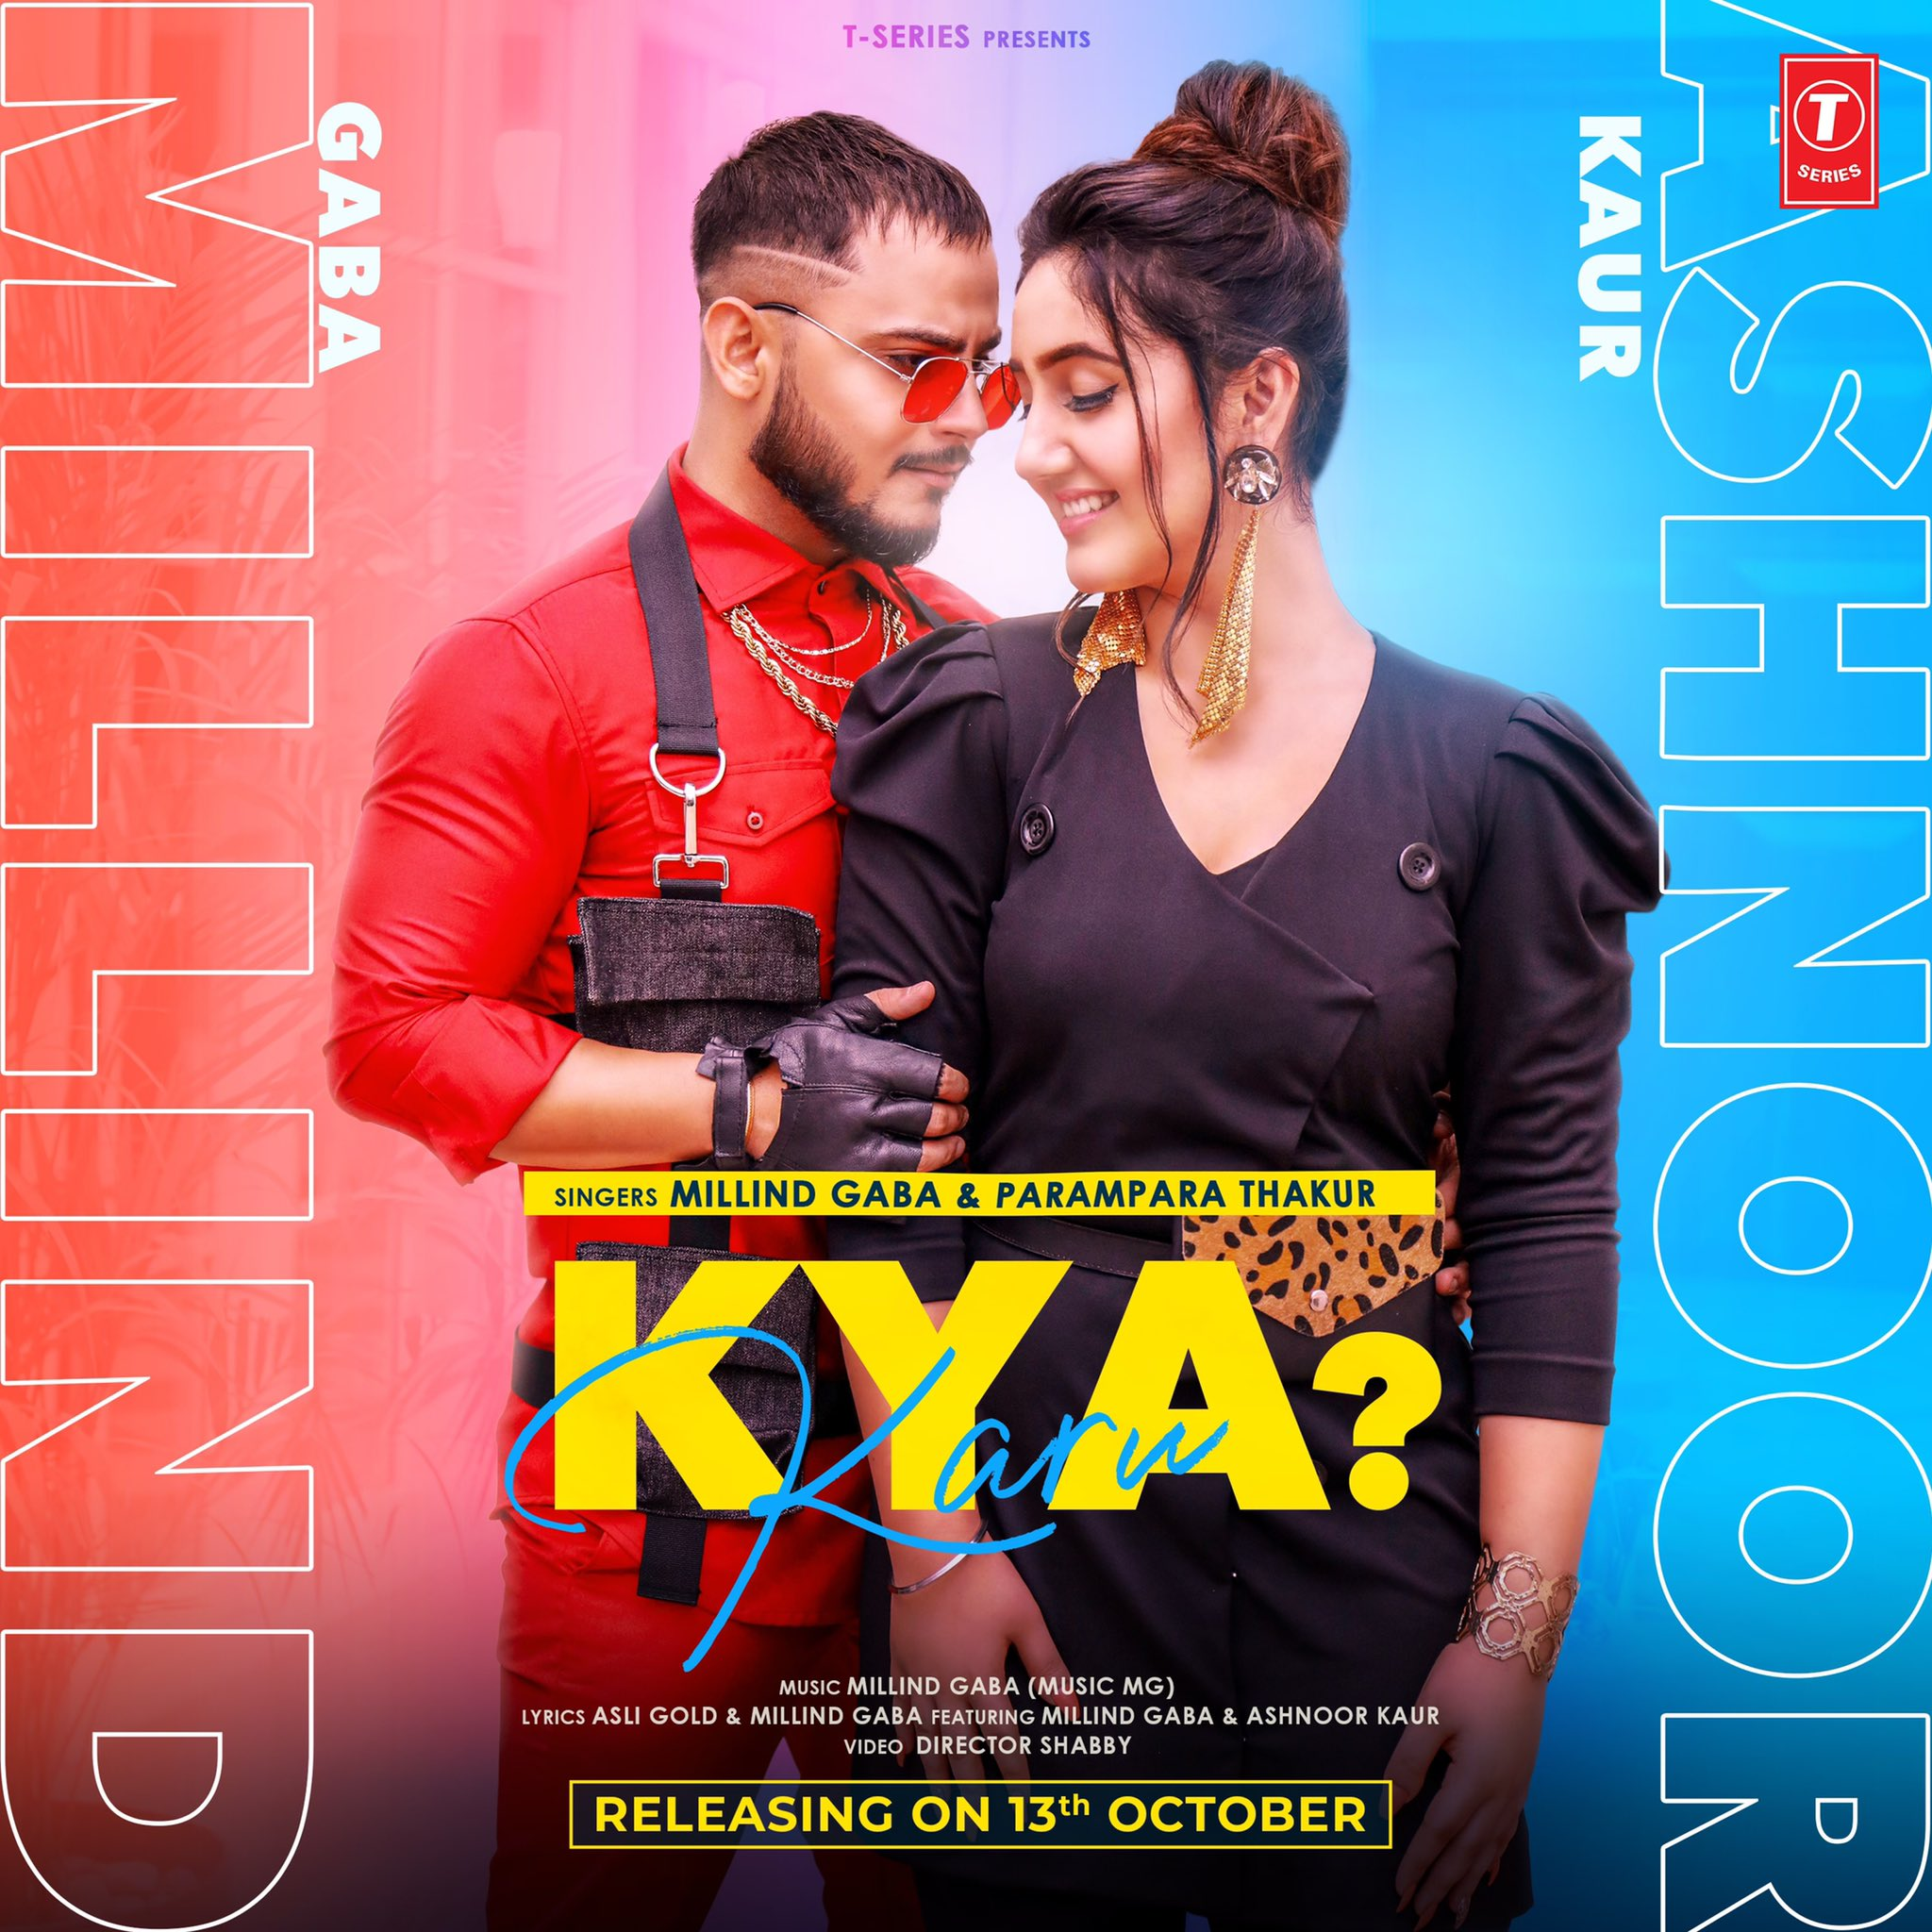 Kya Karu By Millind Gaba & Parmpara Official Music Video 1080p HDRip 103MB Download